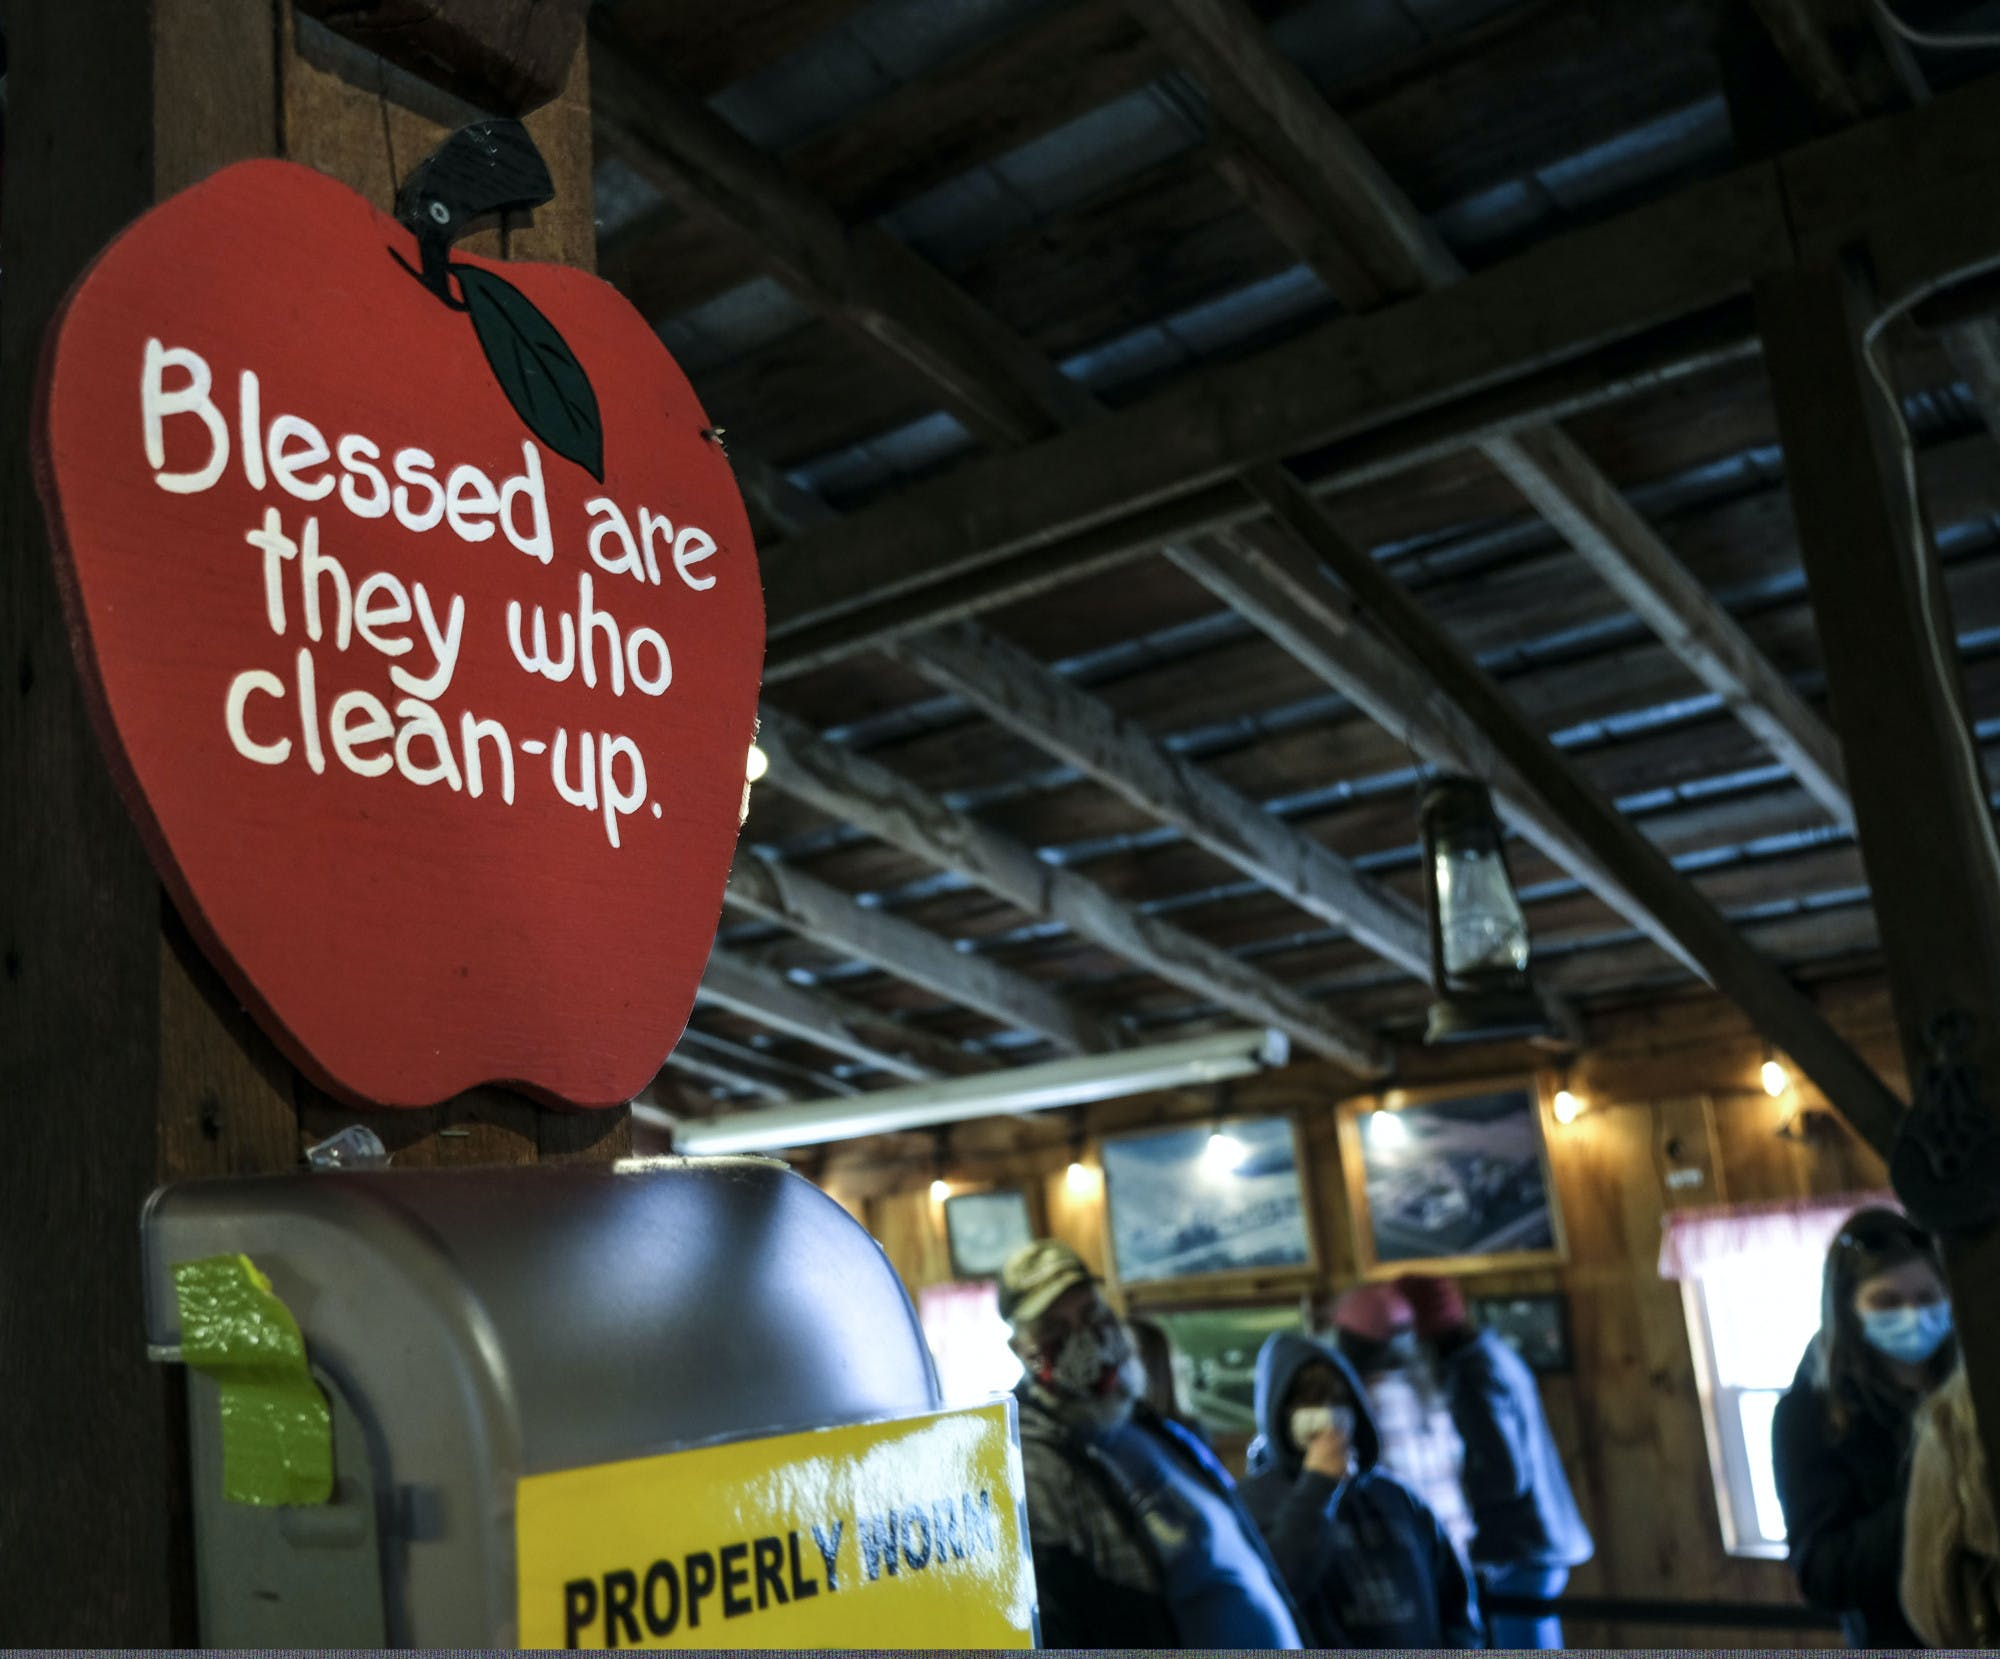 A sign shaped like an apple reads, Blessed are they who clean-up.